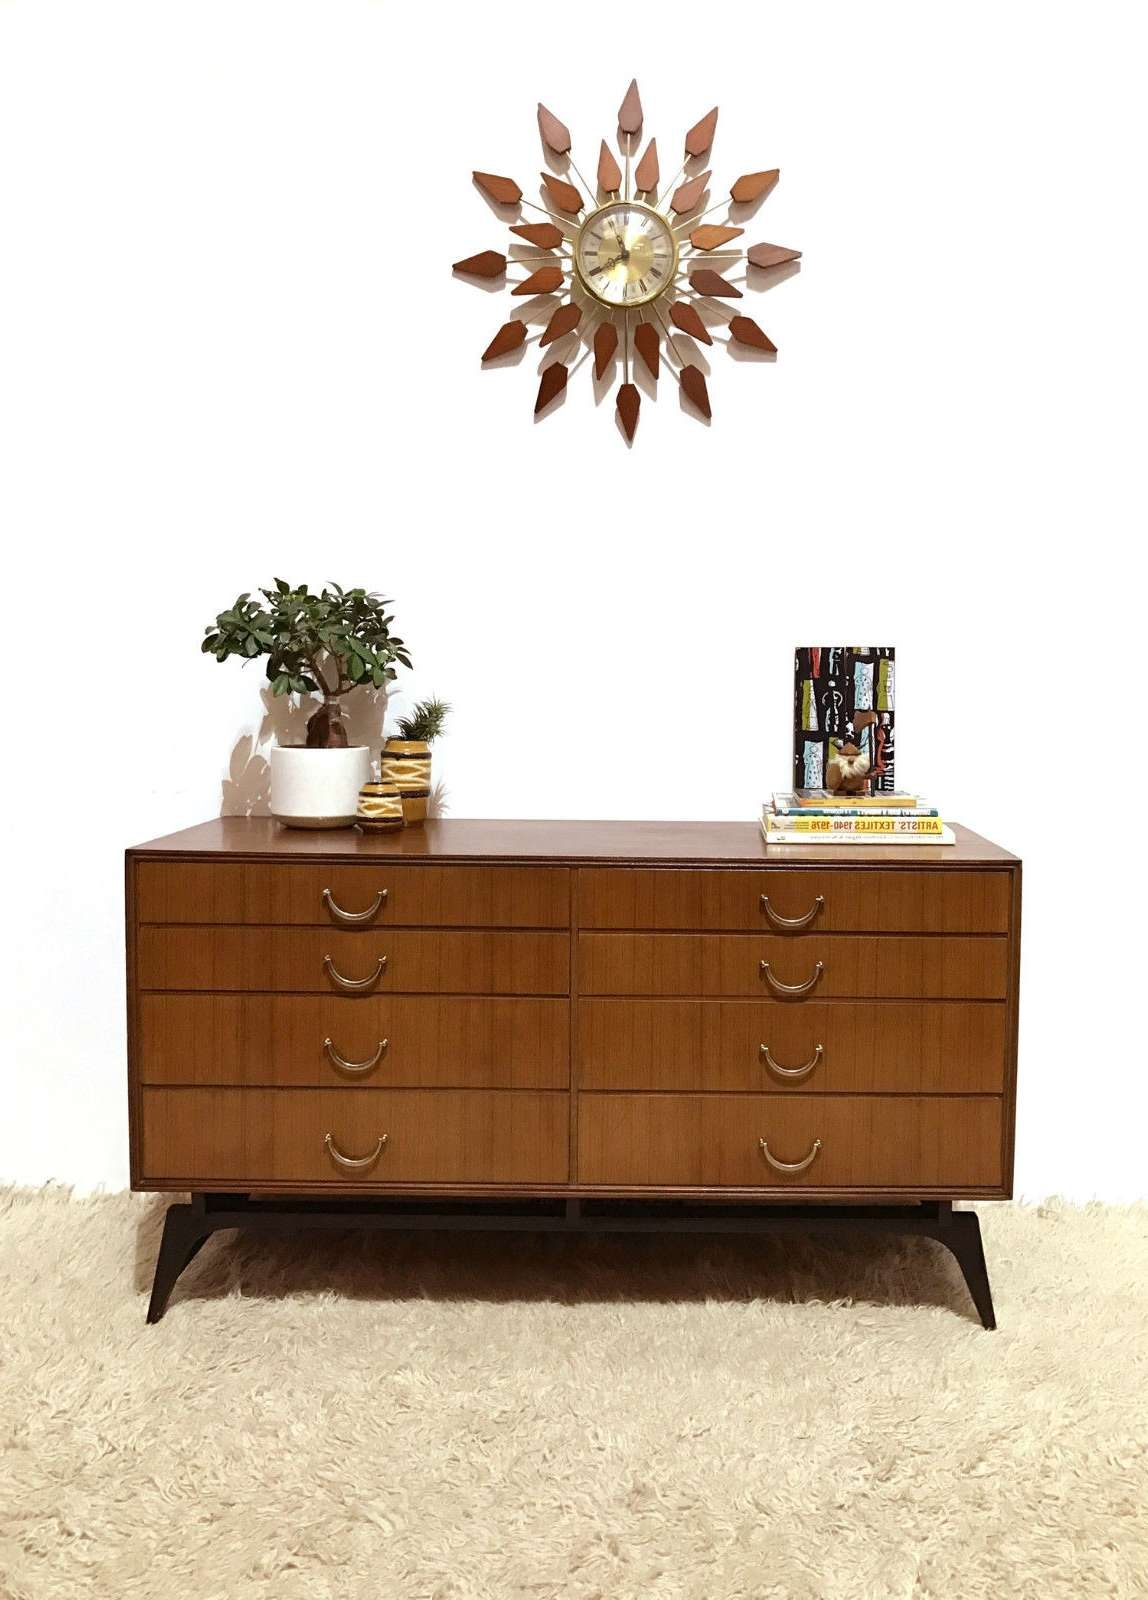 50S 60S Outstanding Mid Century Retro Vintage Sideboard Chest In 50S Sideboards (View 4 of 20)